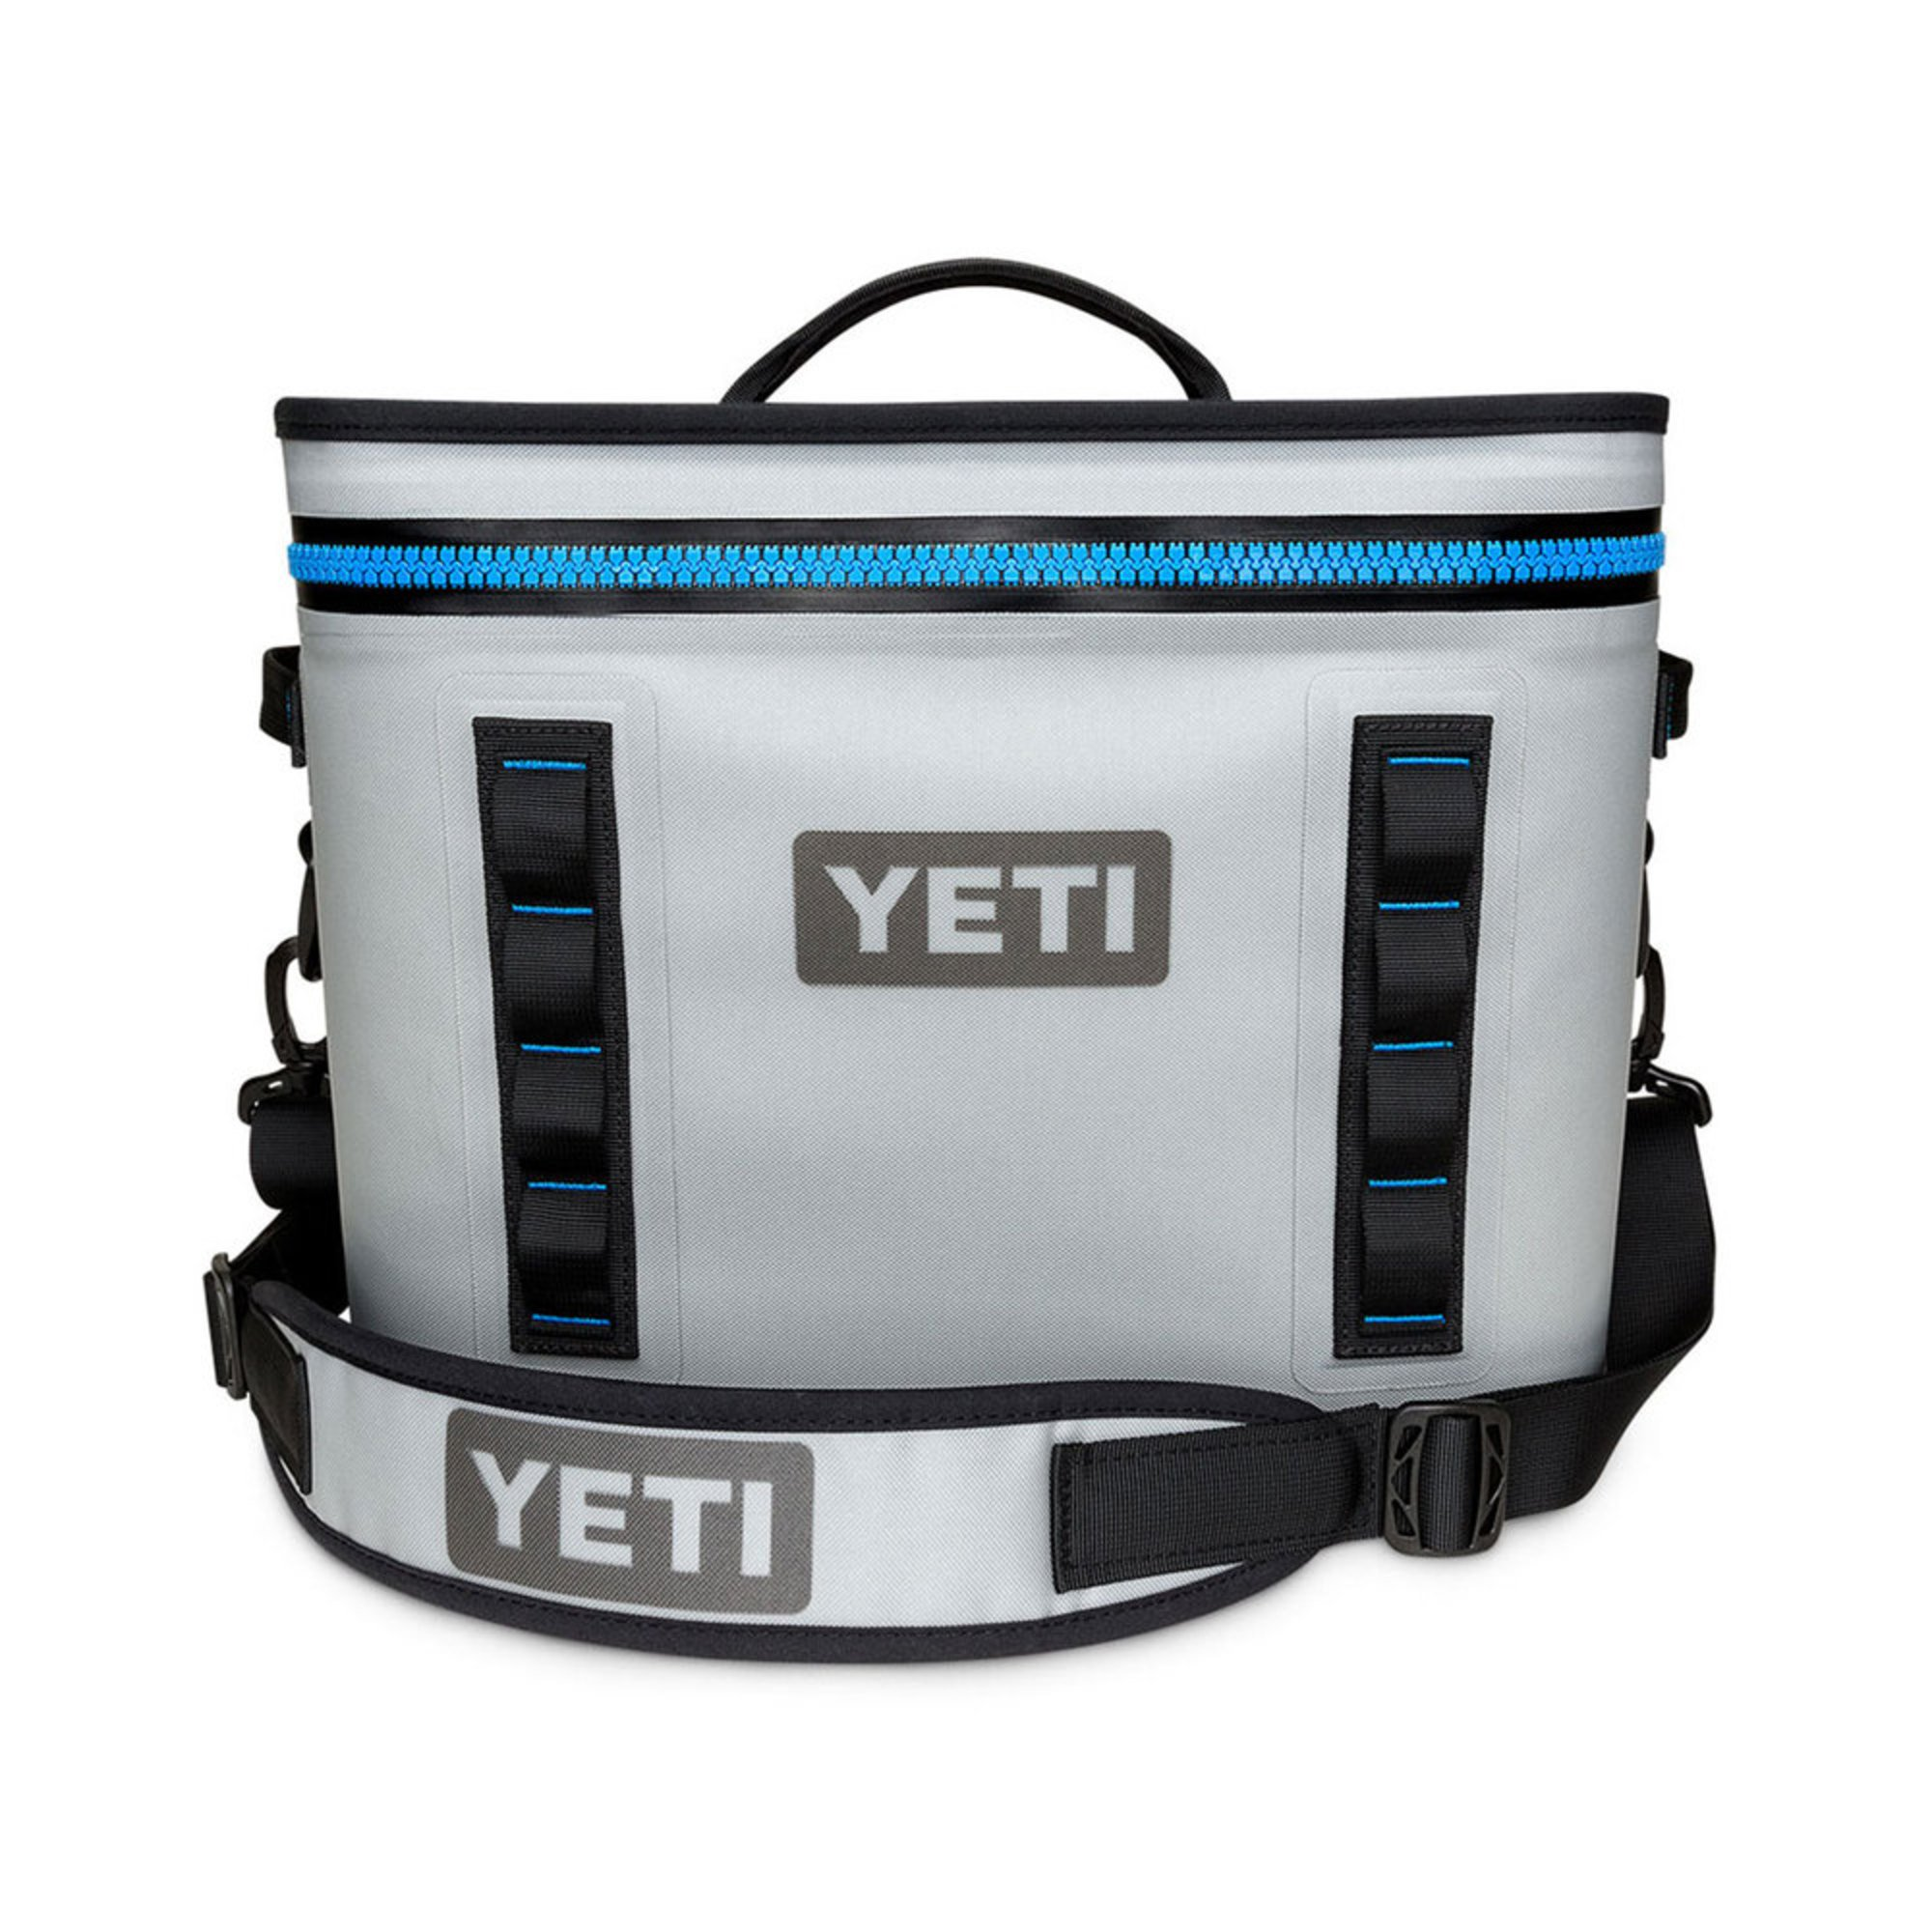 9165ec794a7 Yeti Hopper Flip 18 - Fog Gray / Tahoe Blue | Softside Coolers ...